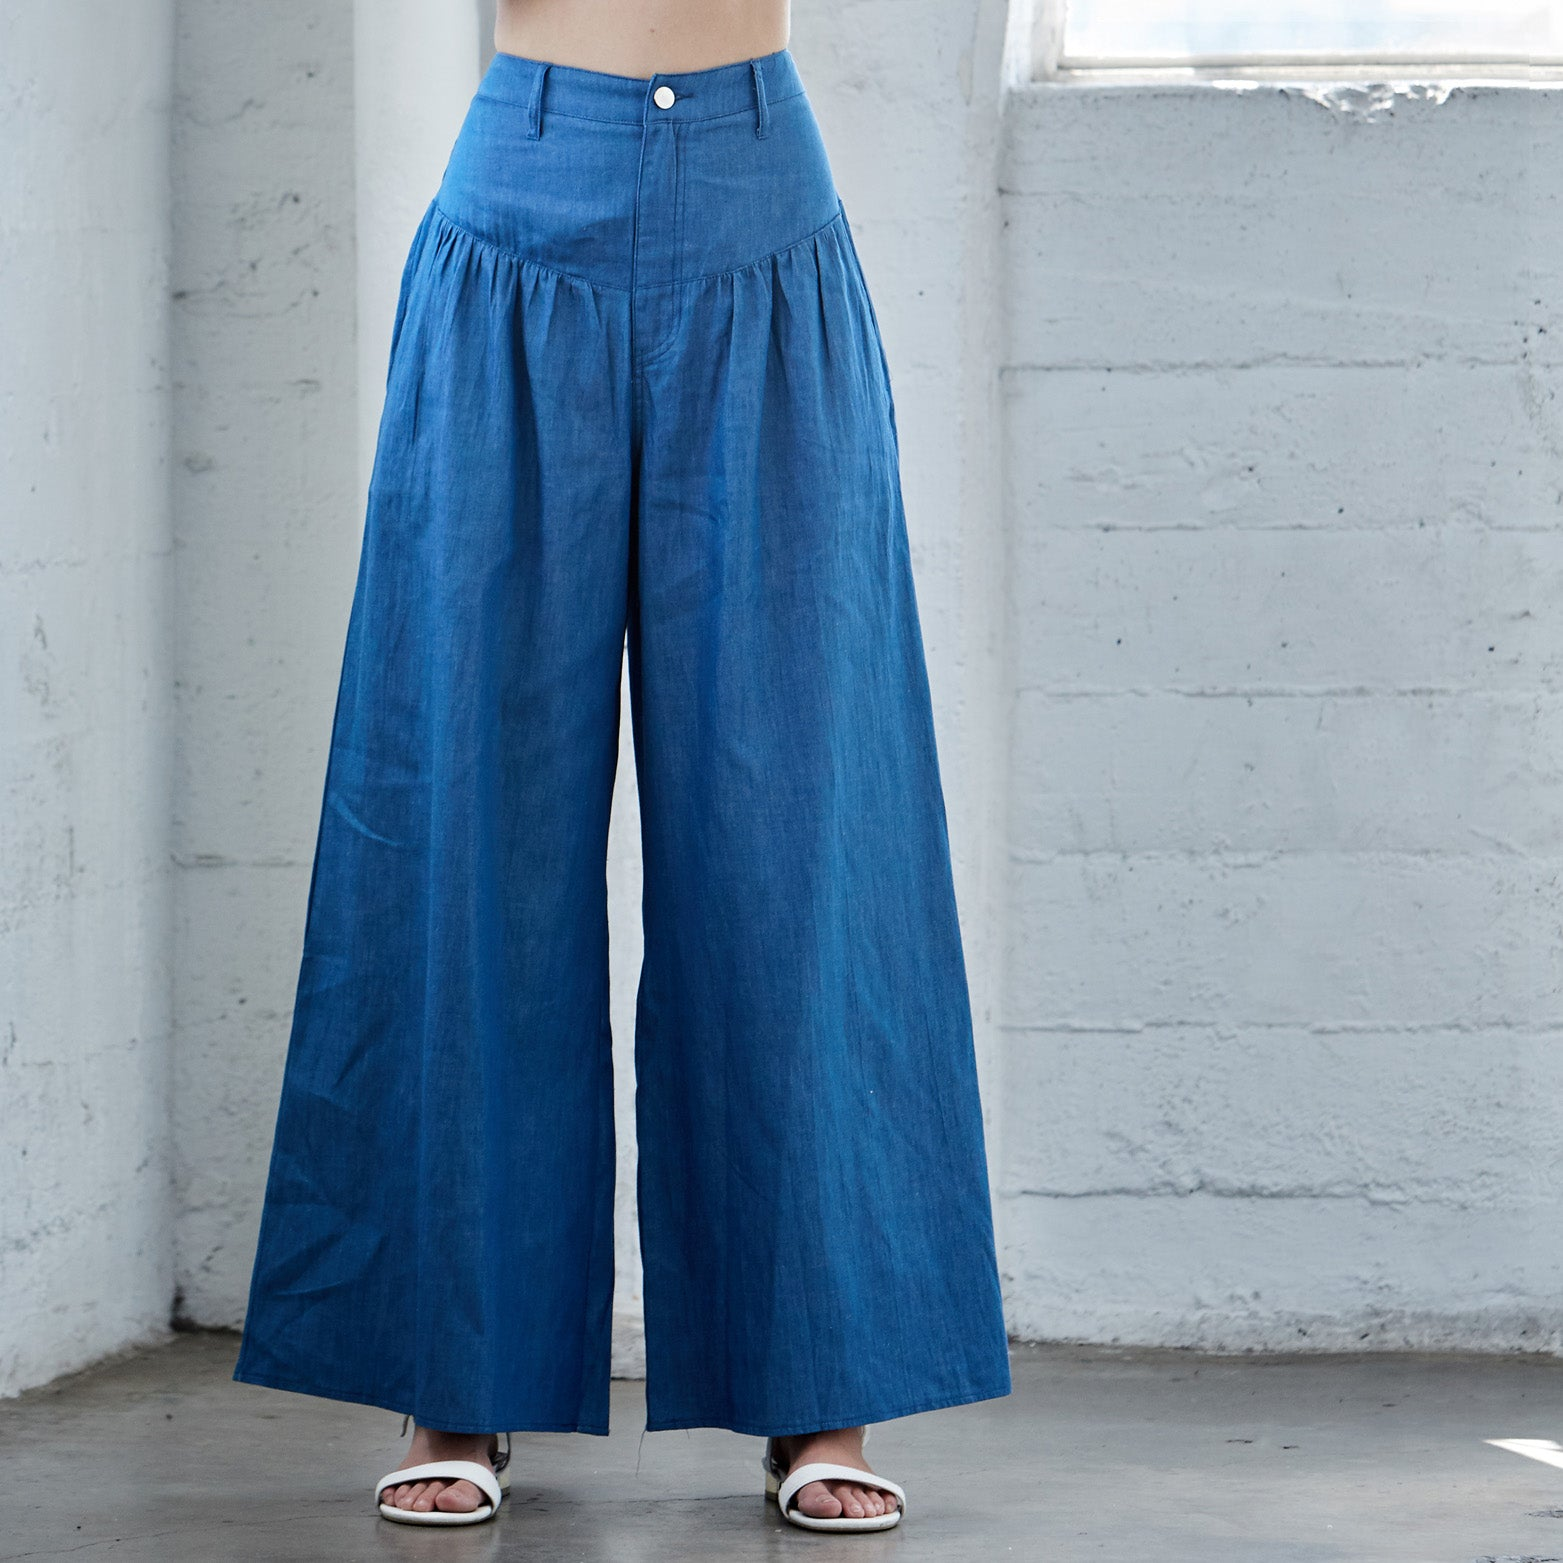 Let Me Be Me Palazzo Pants - Love, Kuza